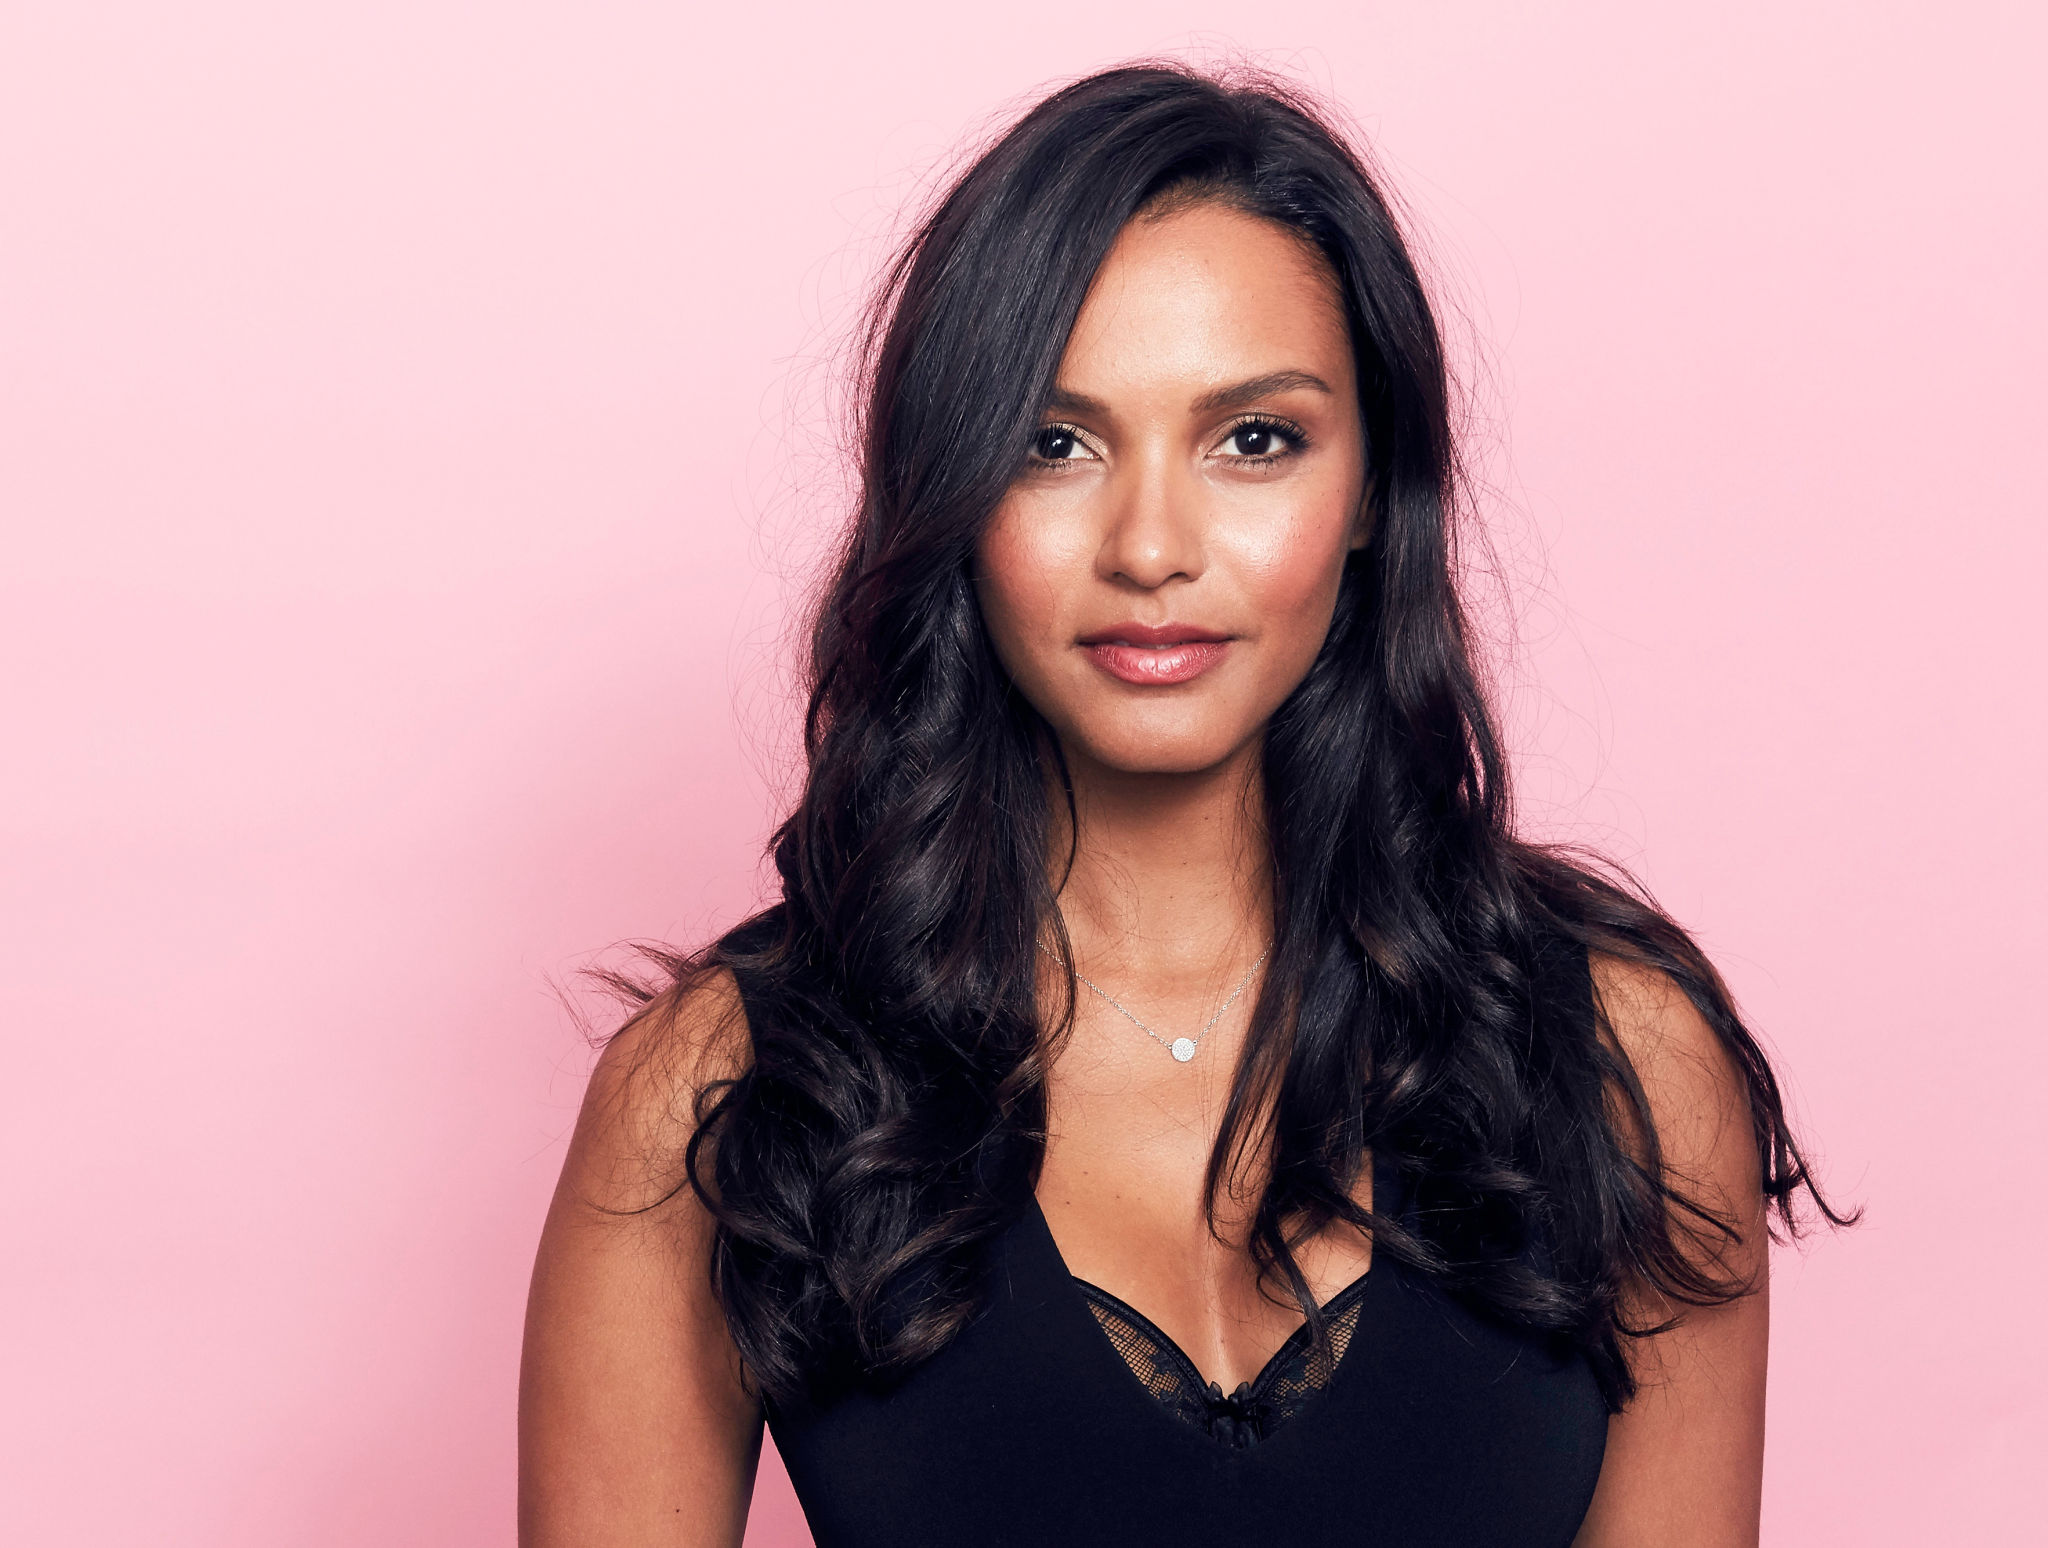 Jessica Lucas 2018 Hd Celebrities 4k Wallpapers Images Backgrounds Photos And Pictures